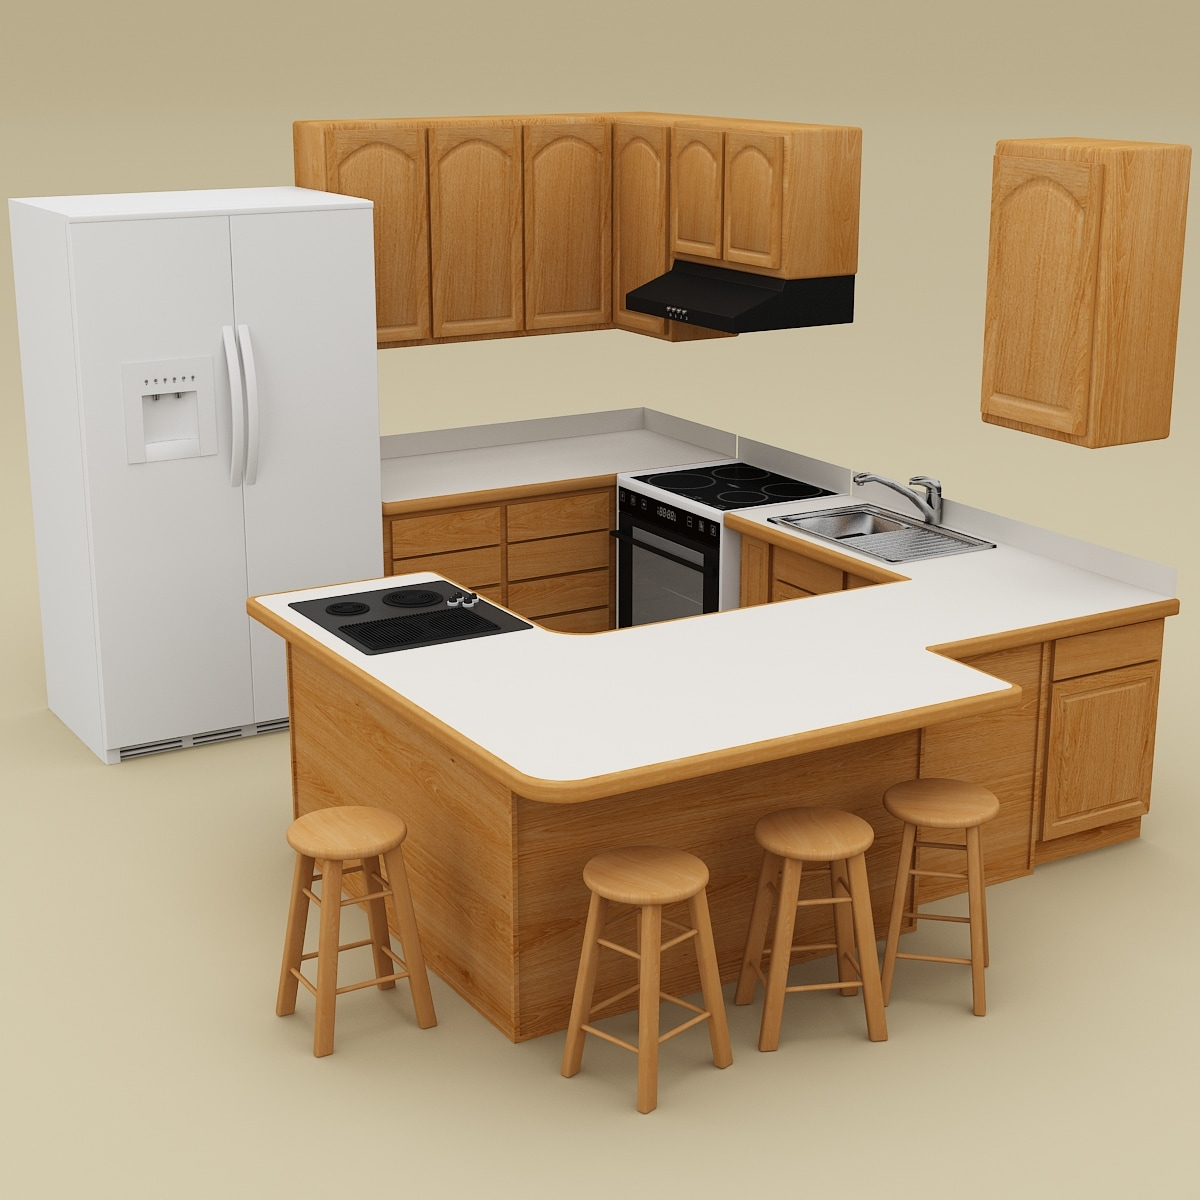 Kitchen_V20_001.jpg